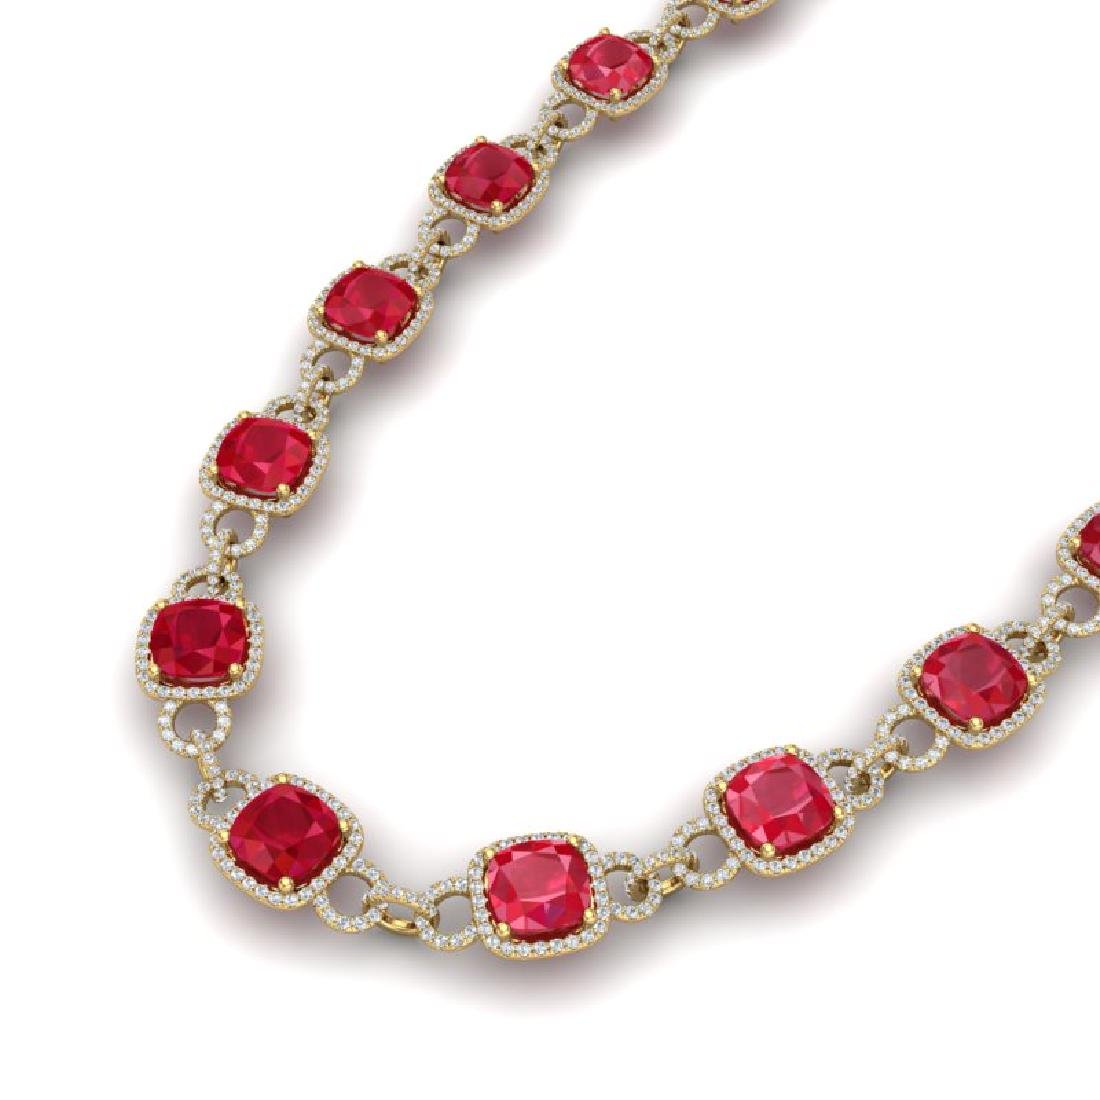 56 CTW Ruby & VS/SI Diamond Necklace 14K Yellow Gold